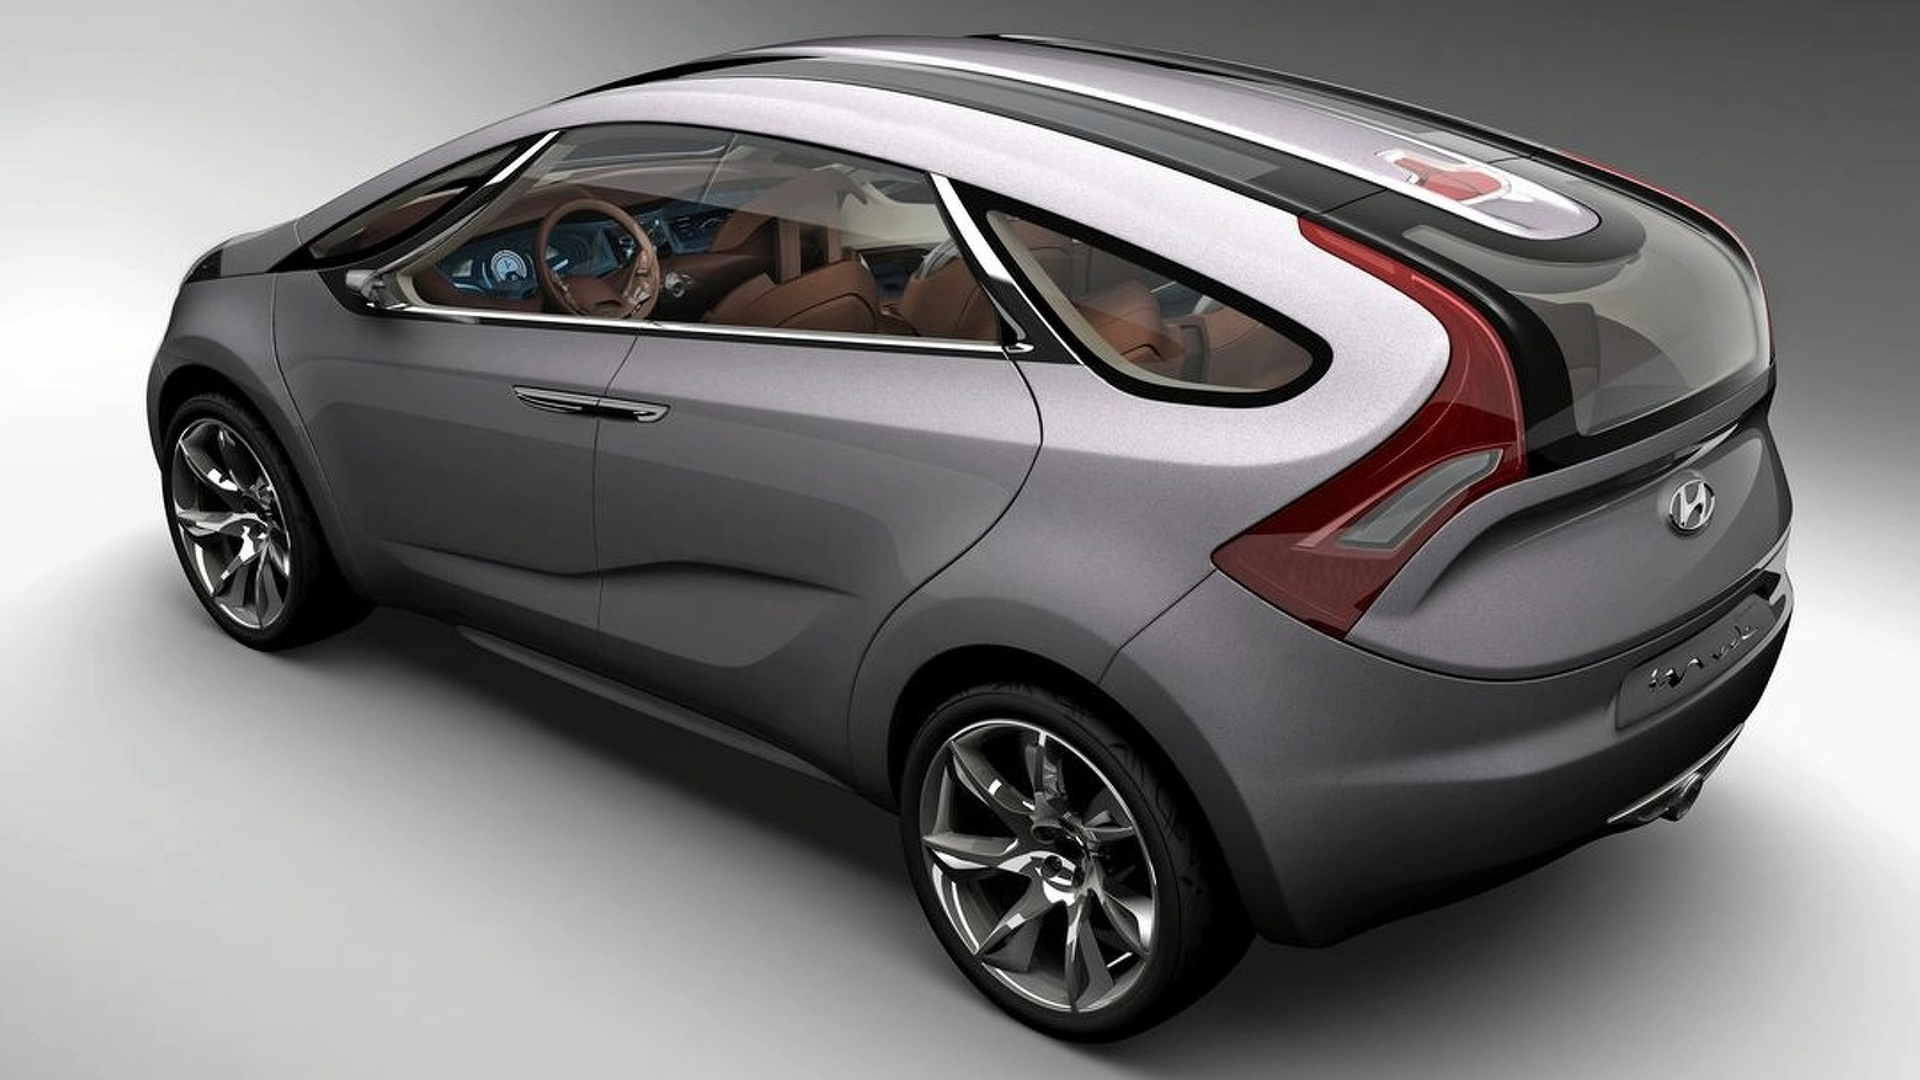 Hyundai HED-5 i-Mode concept features Theta Turbo GDI engine for